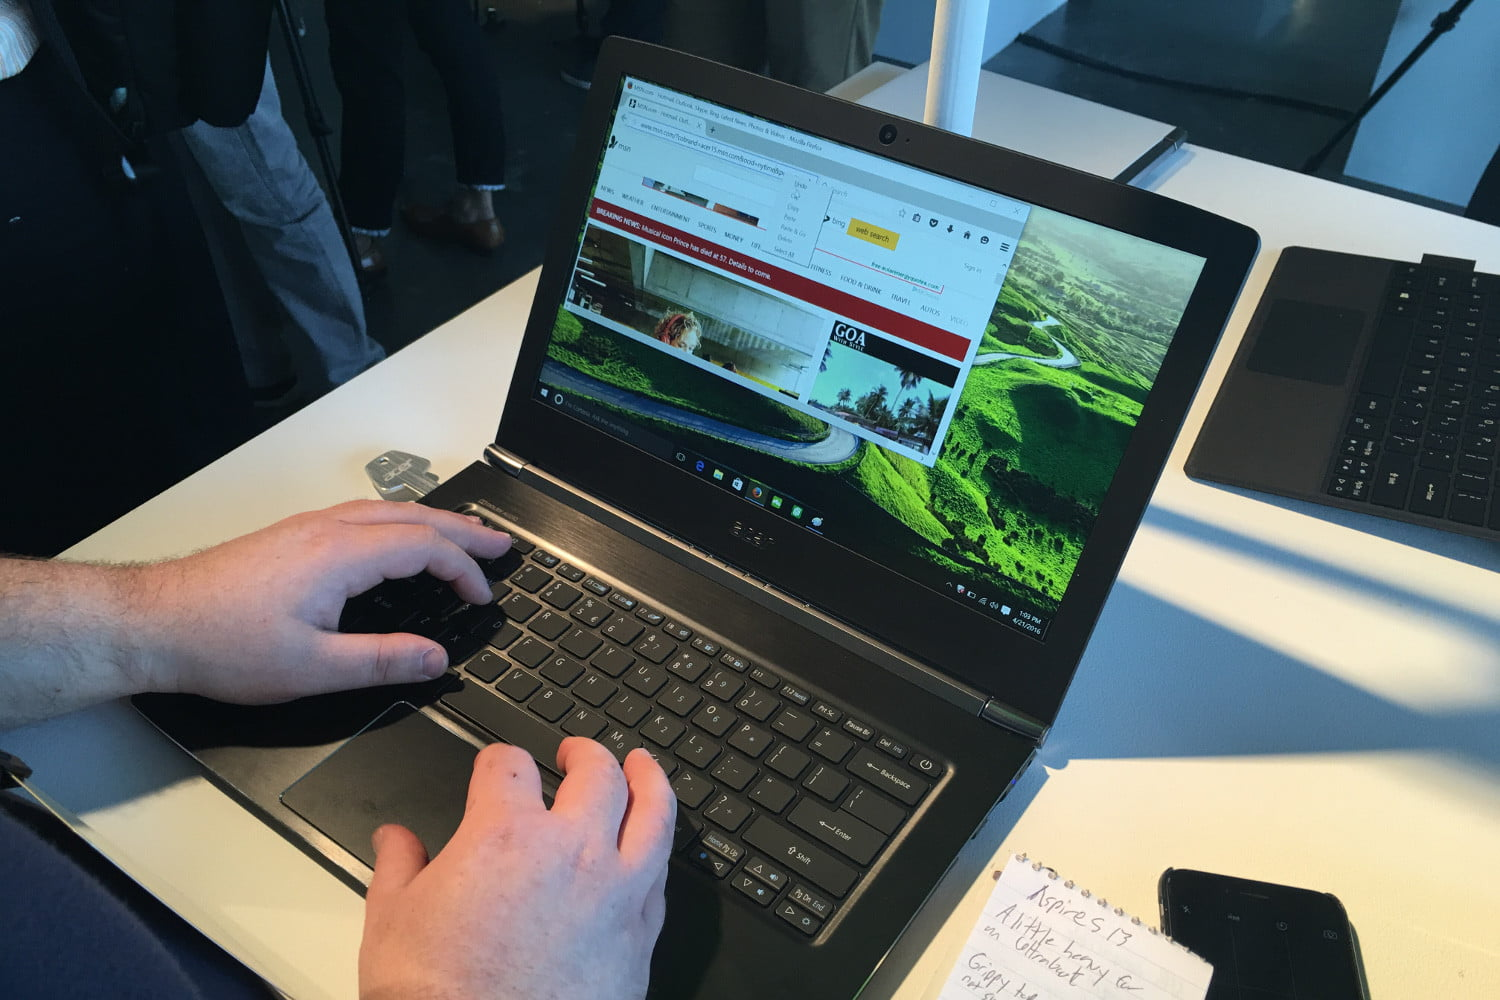 acer nyc event pc refresh aceraspires13 1